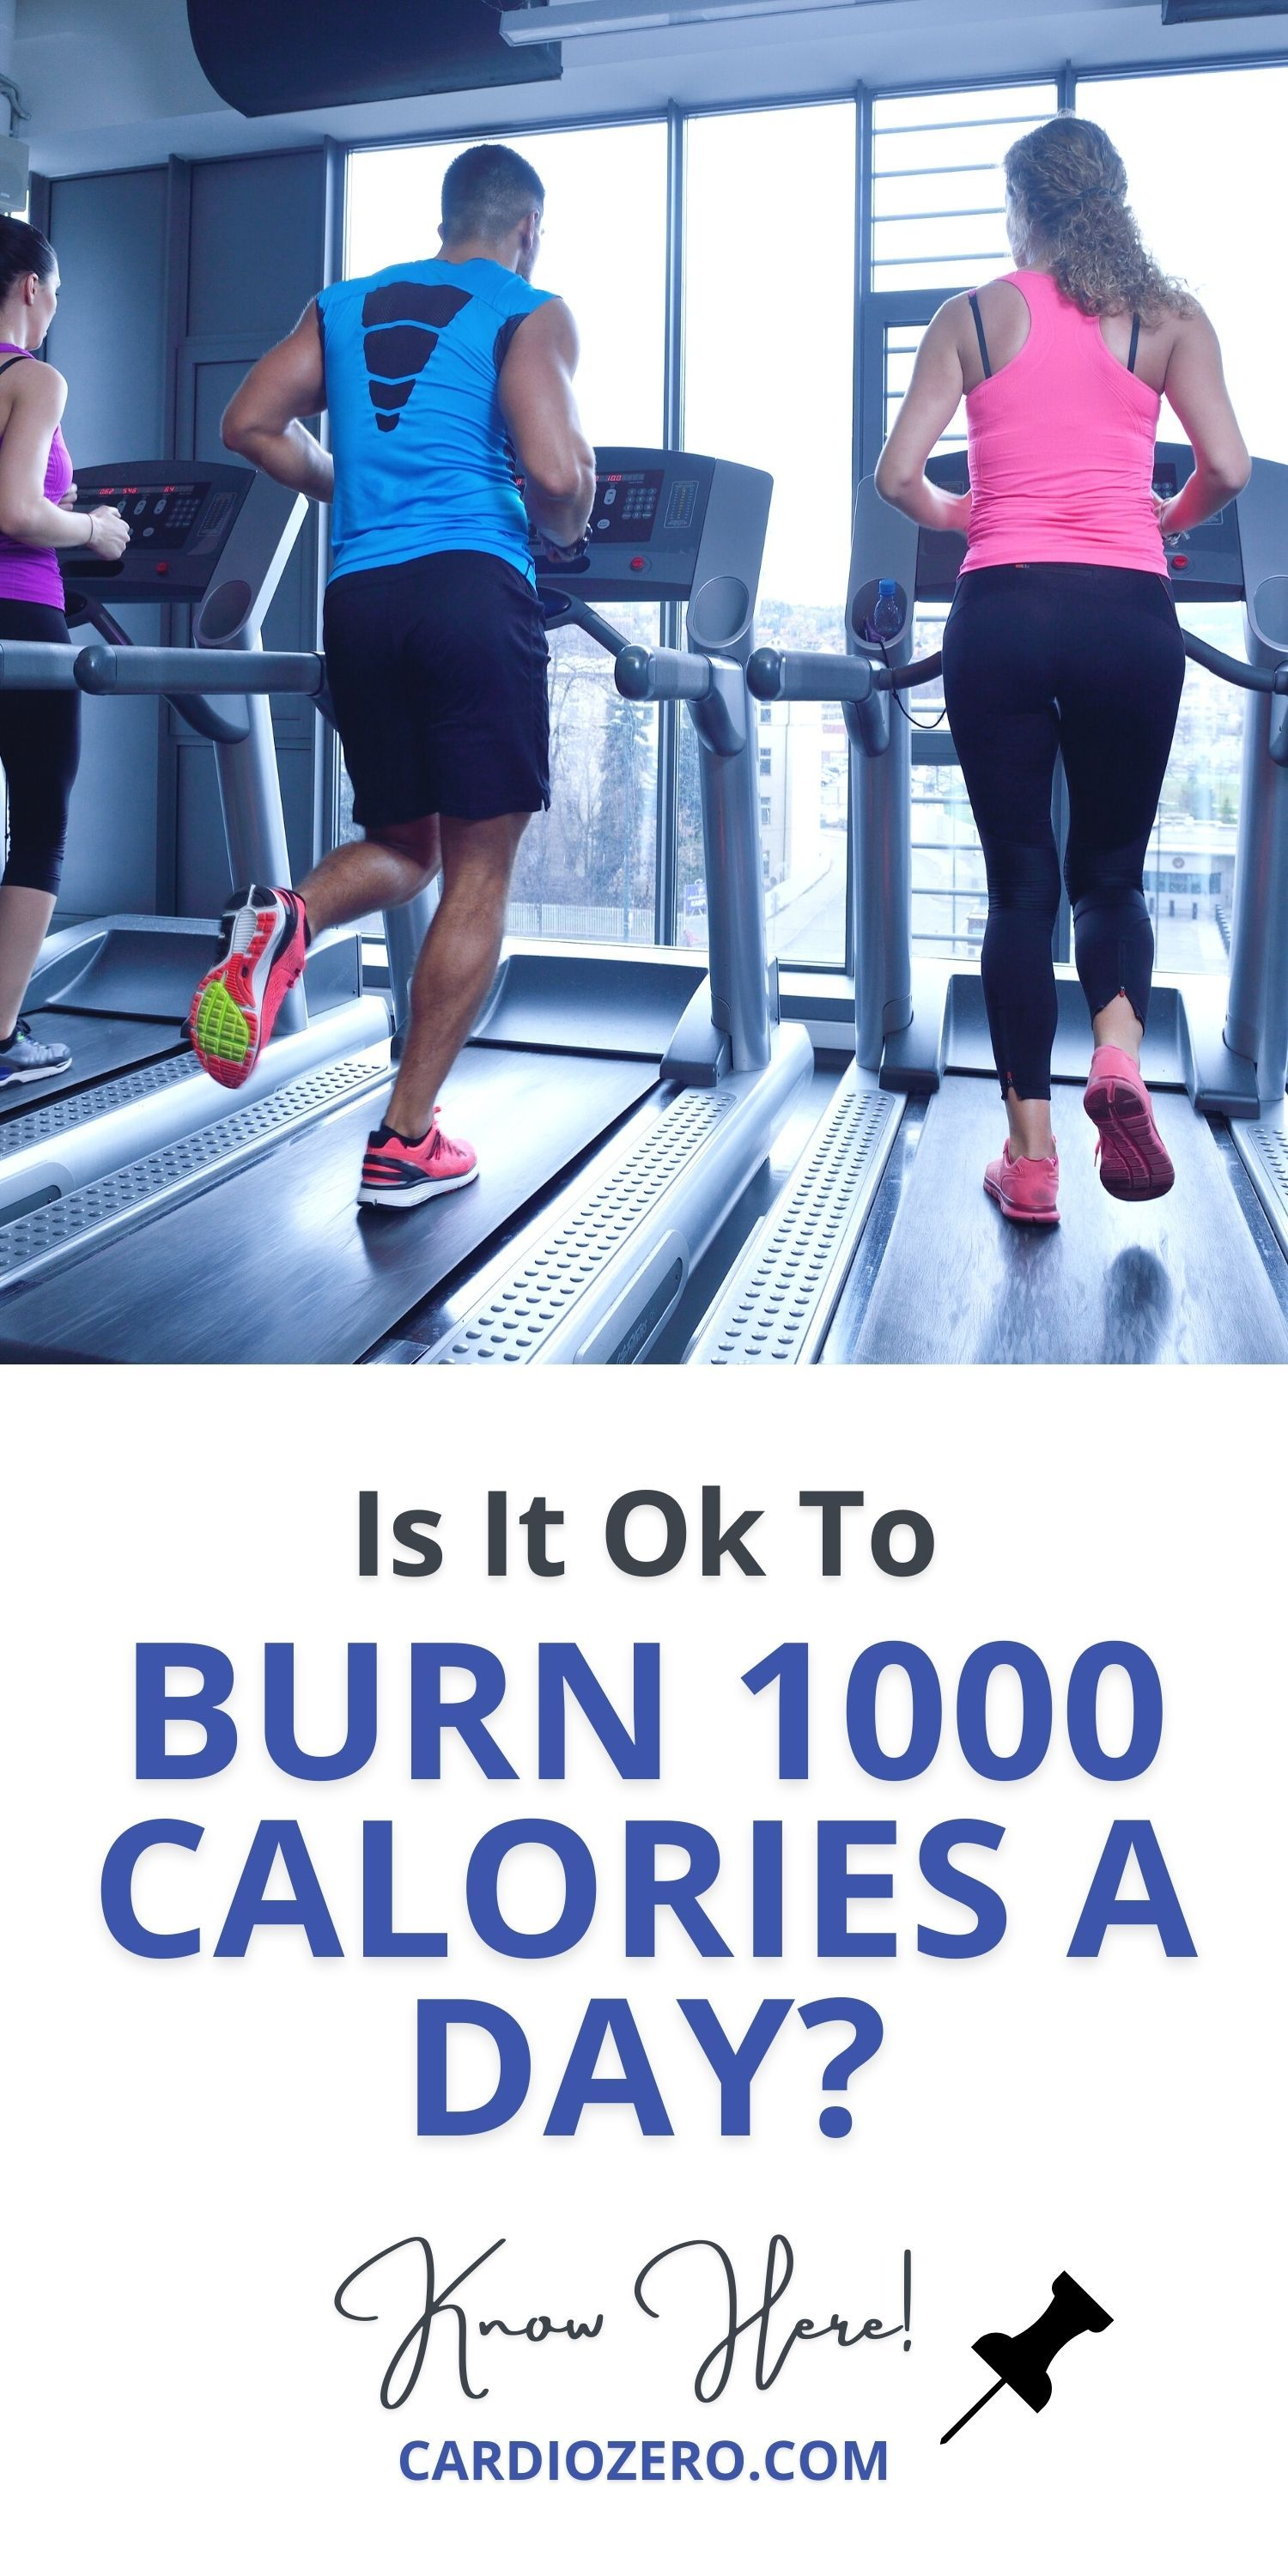 Burning 1,000 calories sounds pretty awesome; that's nearly a third of a pound per workout. At that rate, you'll be back in your skinny jeans by summer! But Is It Ok To Burn 1000 Calories A Day? Let's know here! #weightloss